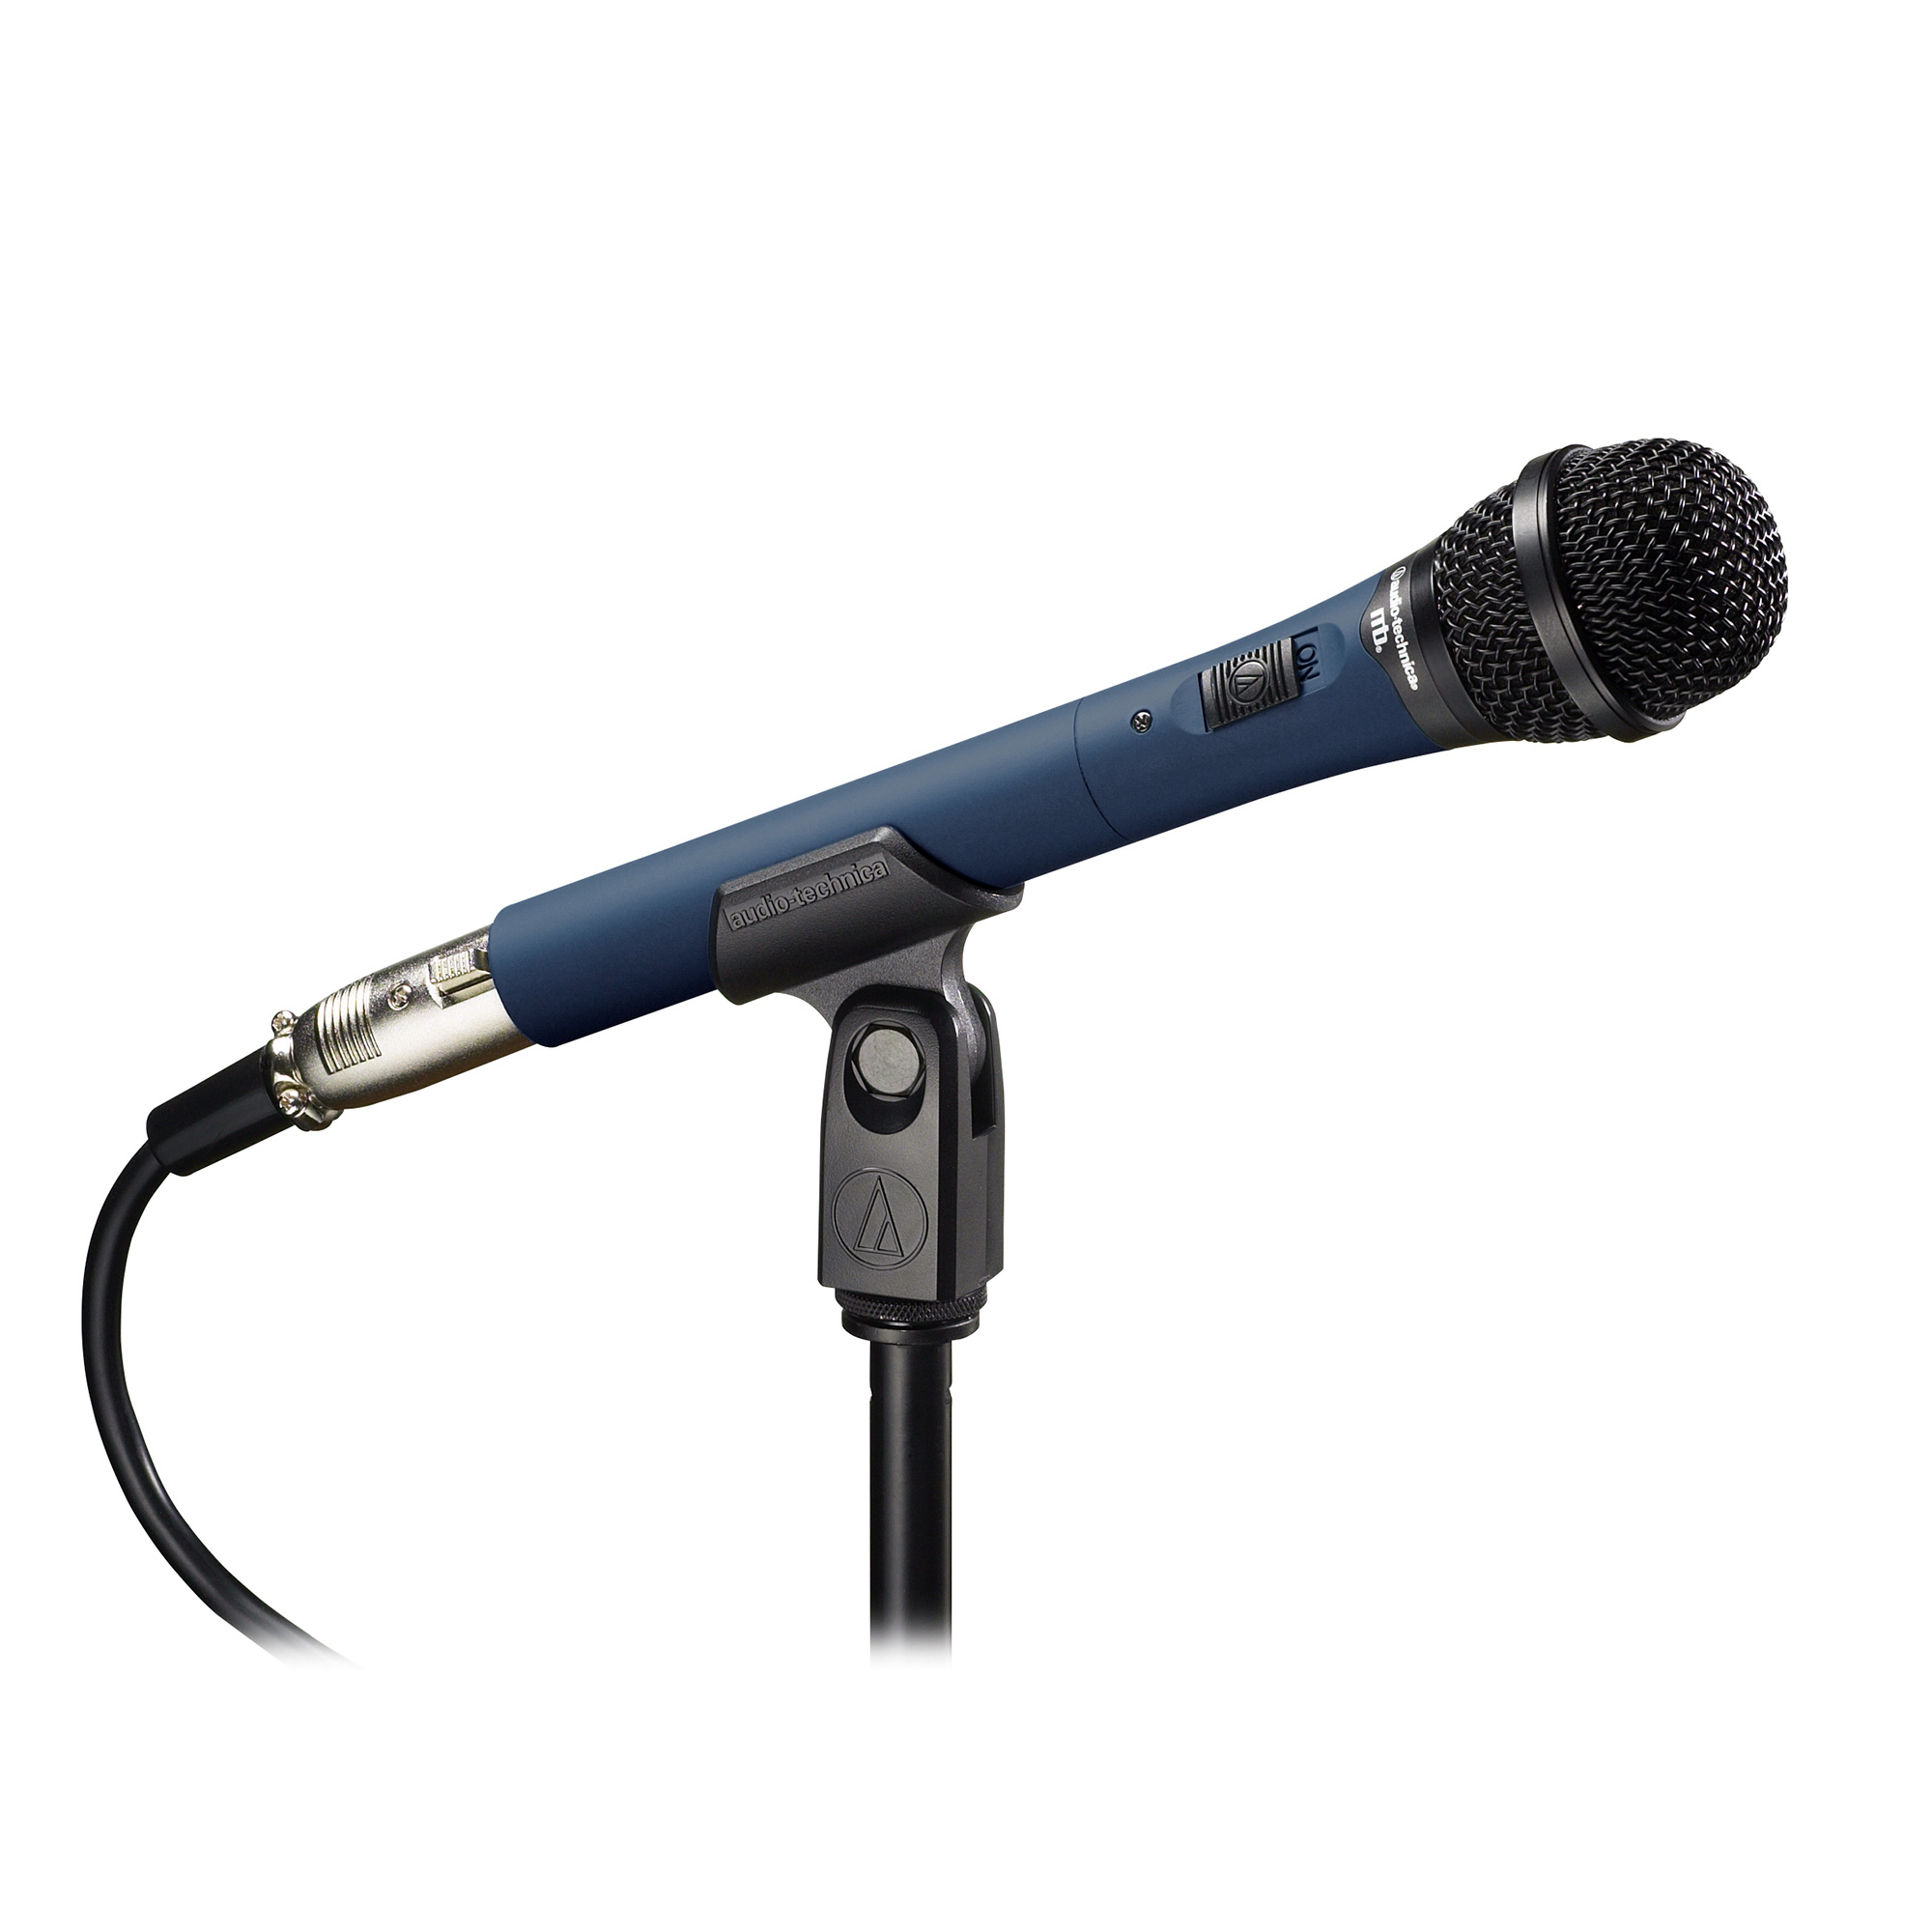 Microphone With Cord : Audio technica mb k cardioid condenser vocal mic with